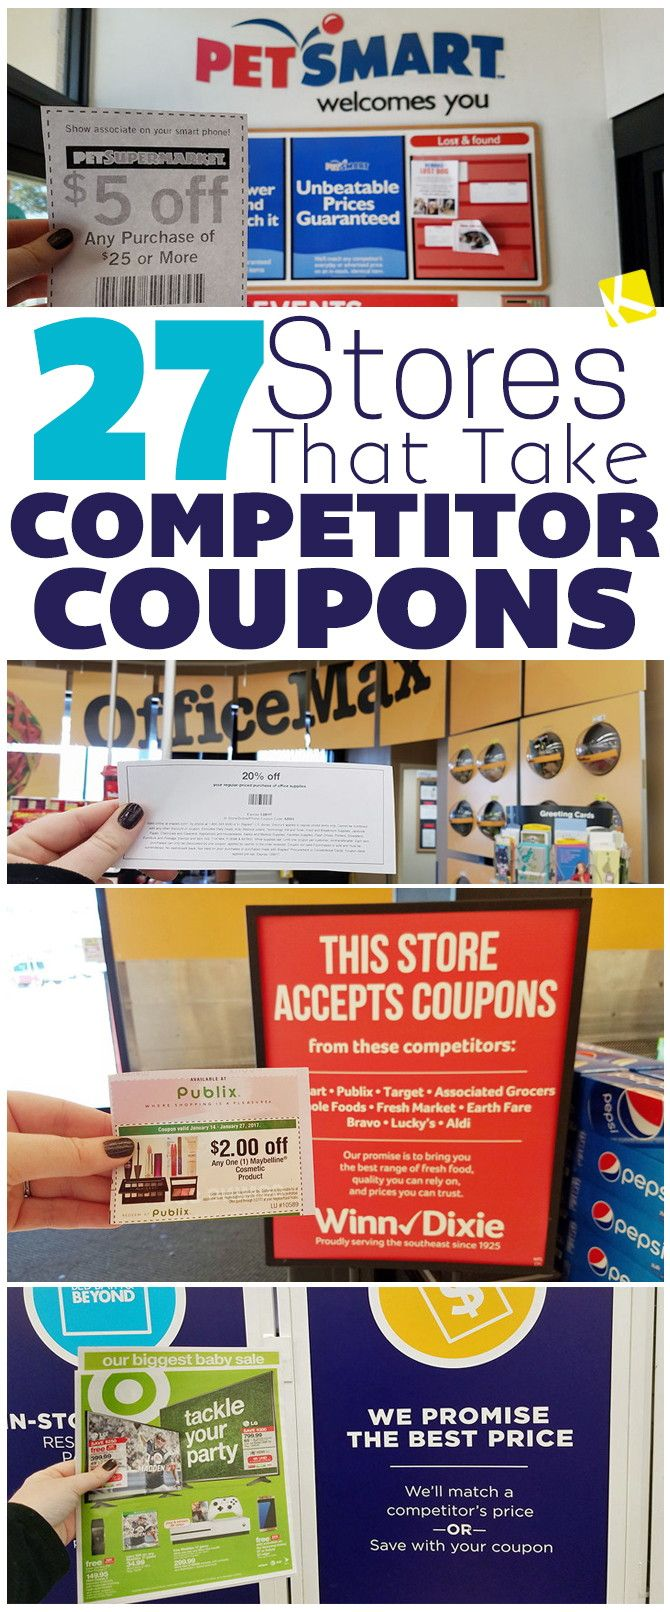 Best buy honor competitor coupons